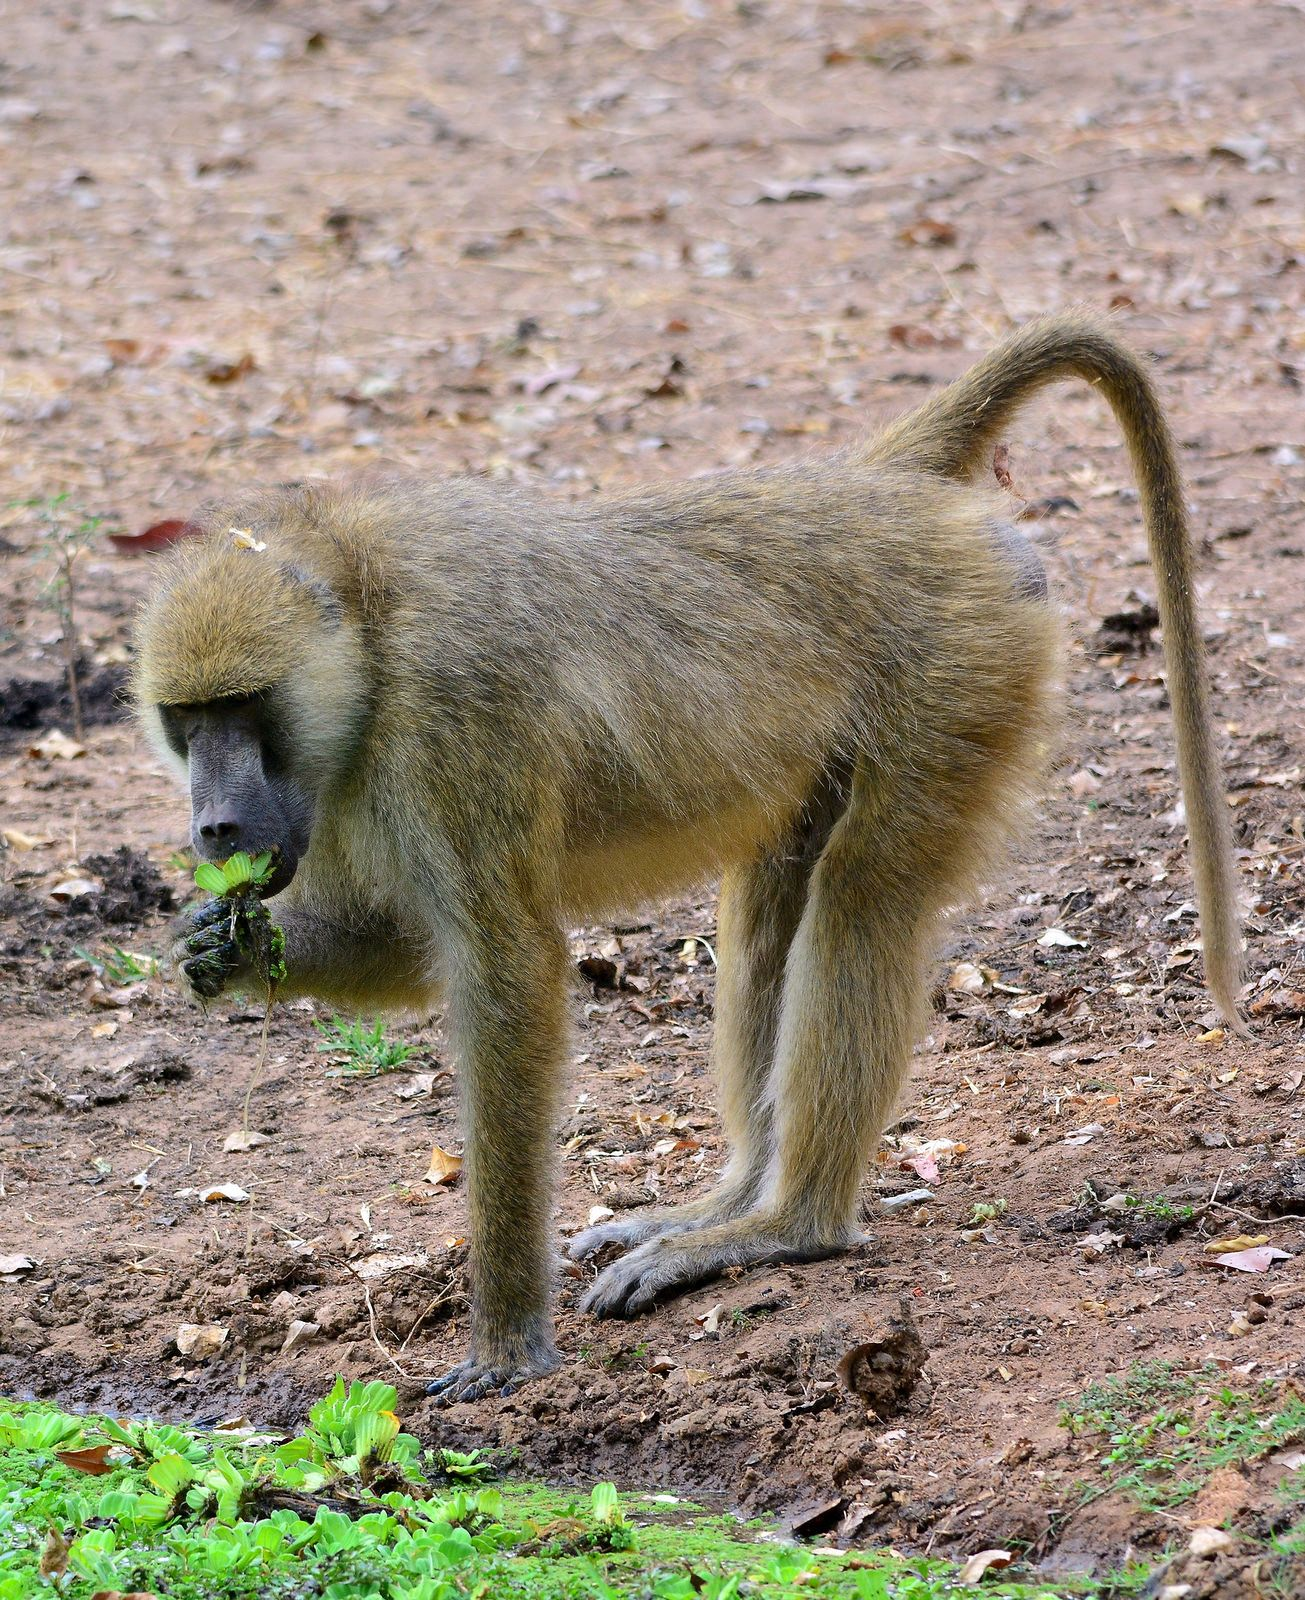 Yellow Baboon (Papio cynocephalus) photographed by Roger Sargent